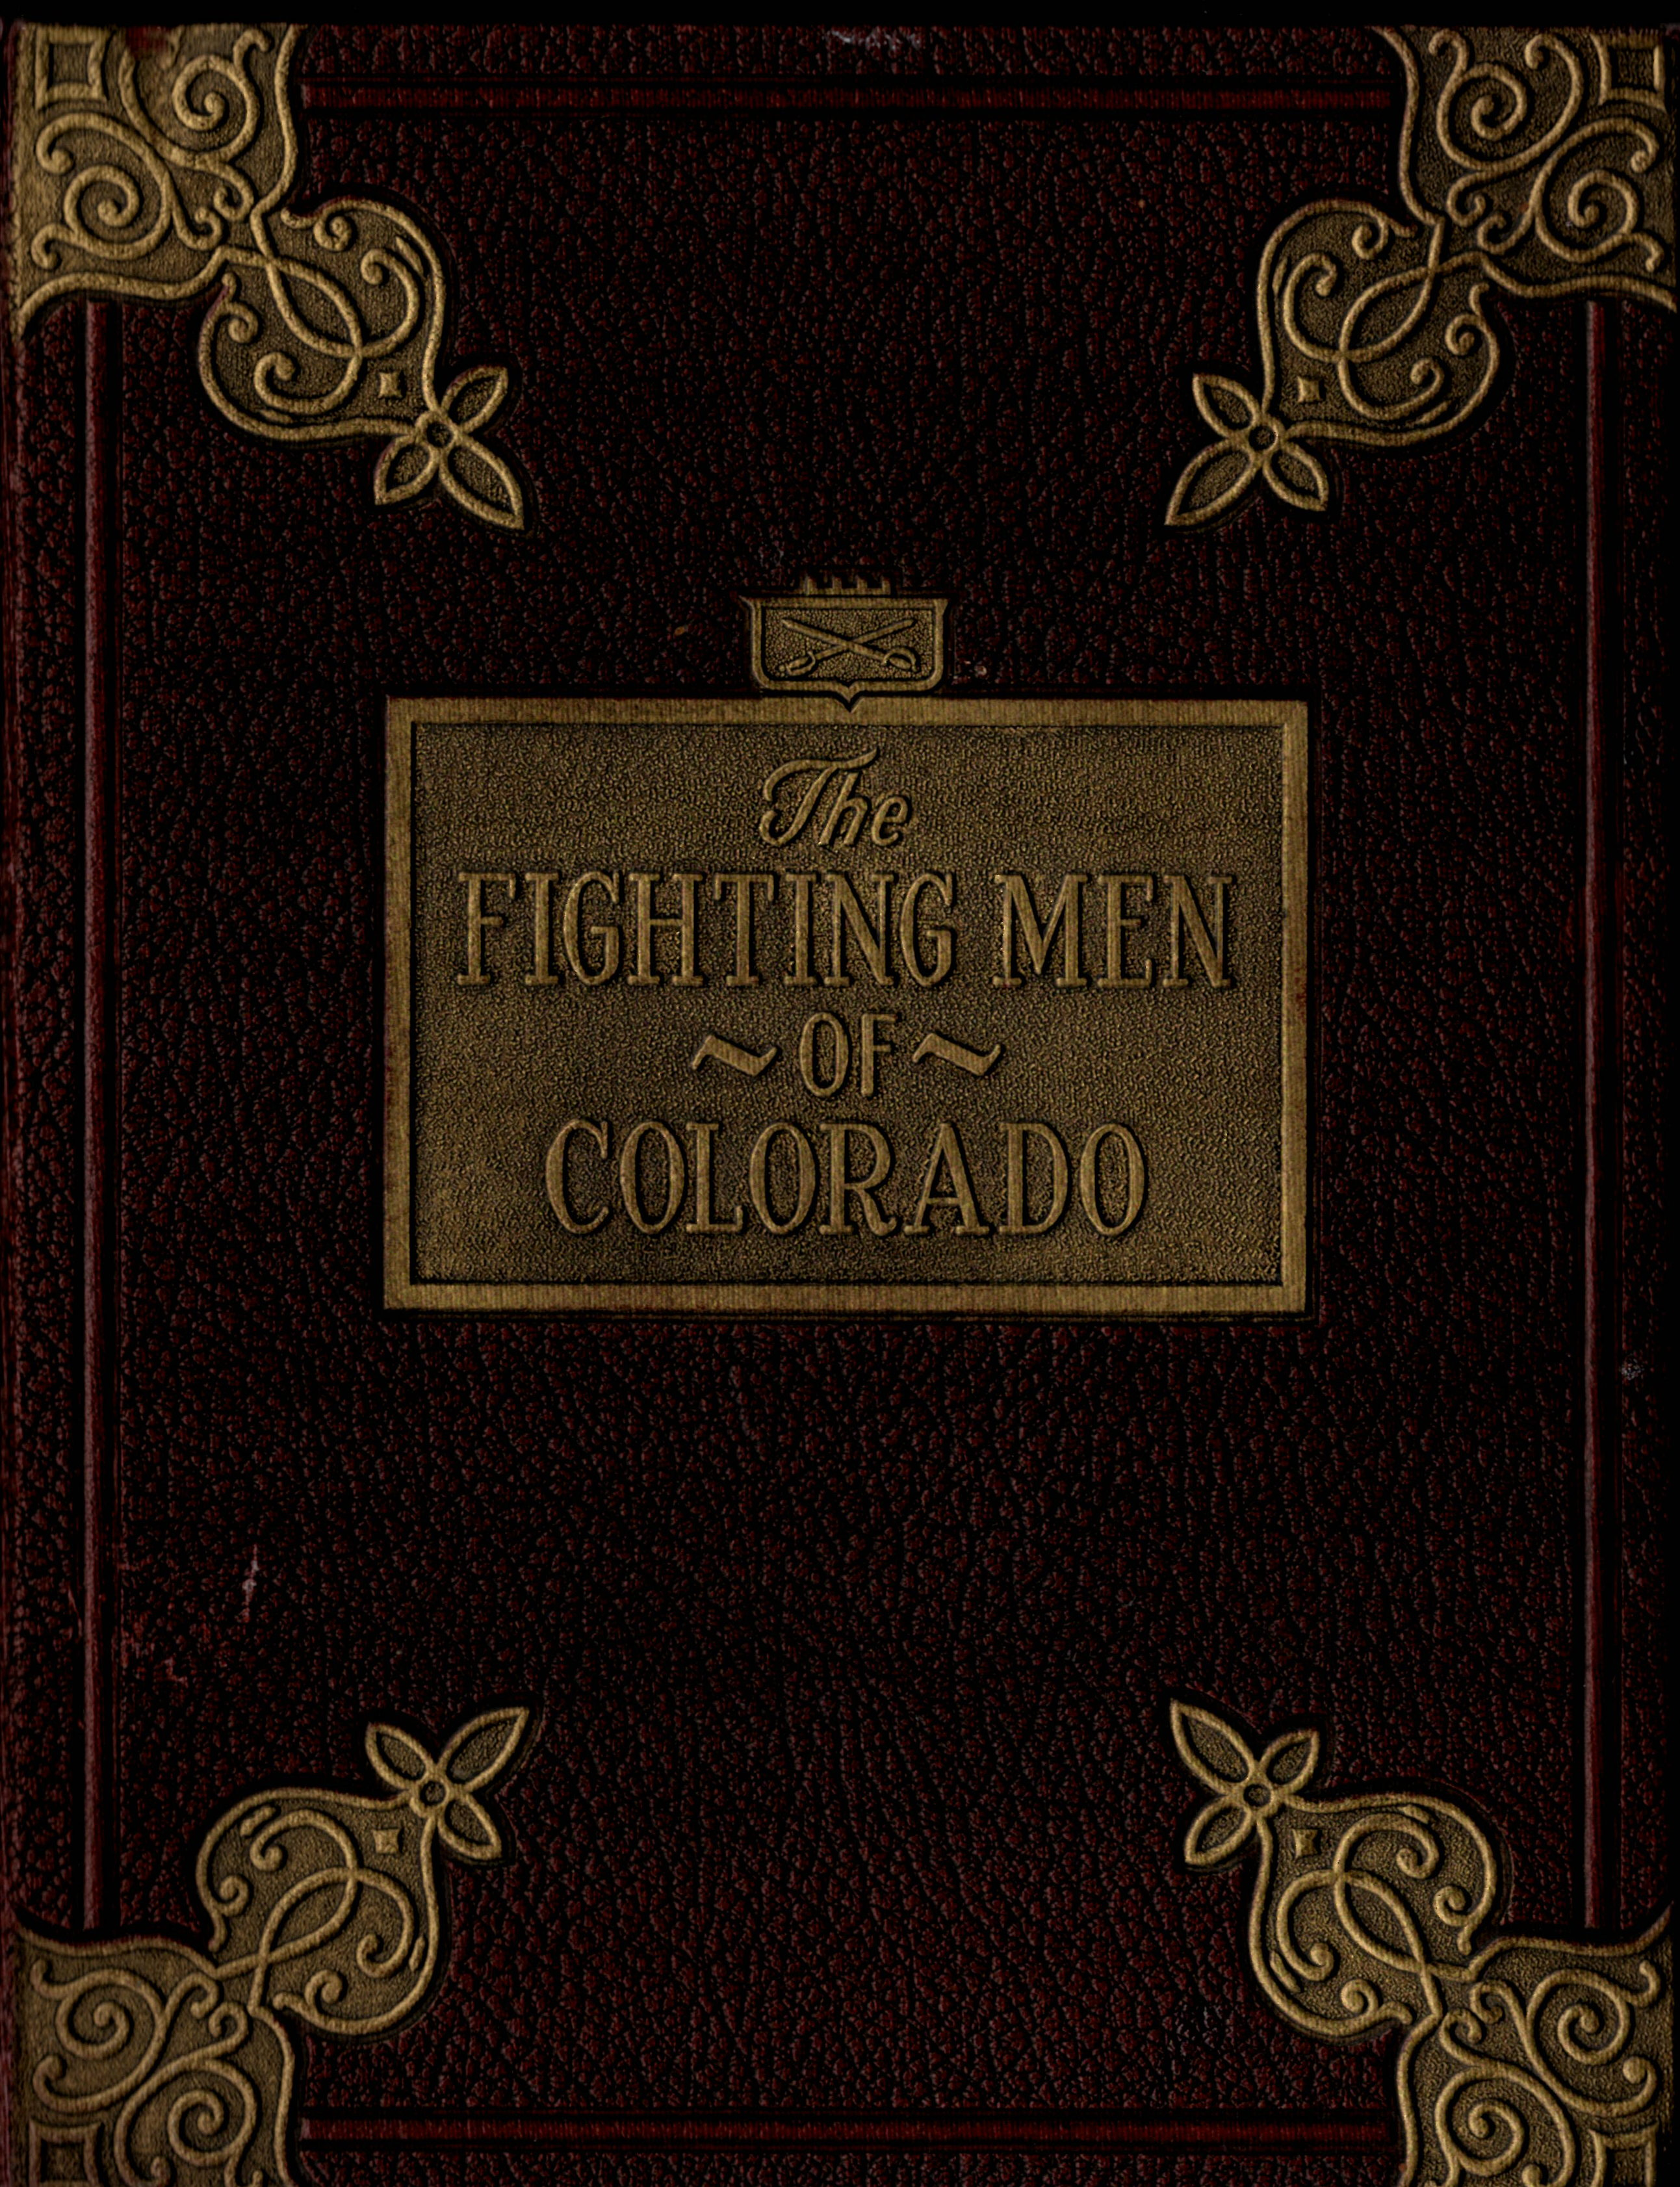 THE FIGHTING MEN OF Colorado - Asiatic-Pacific Theater World War Two - 1948